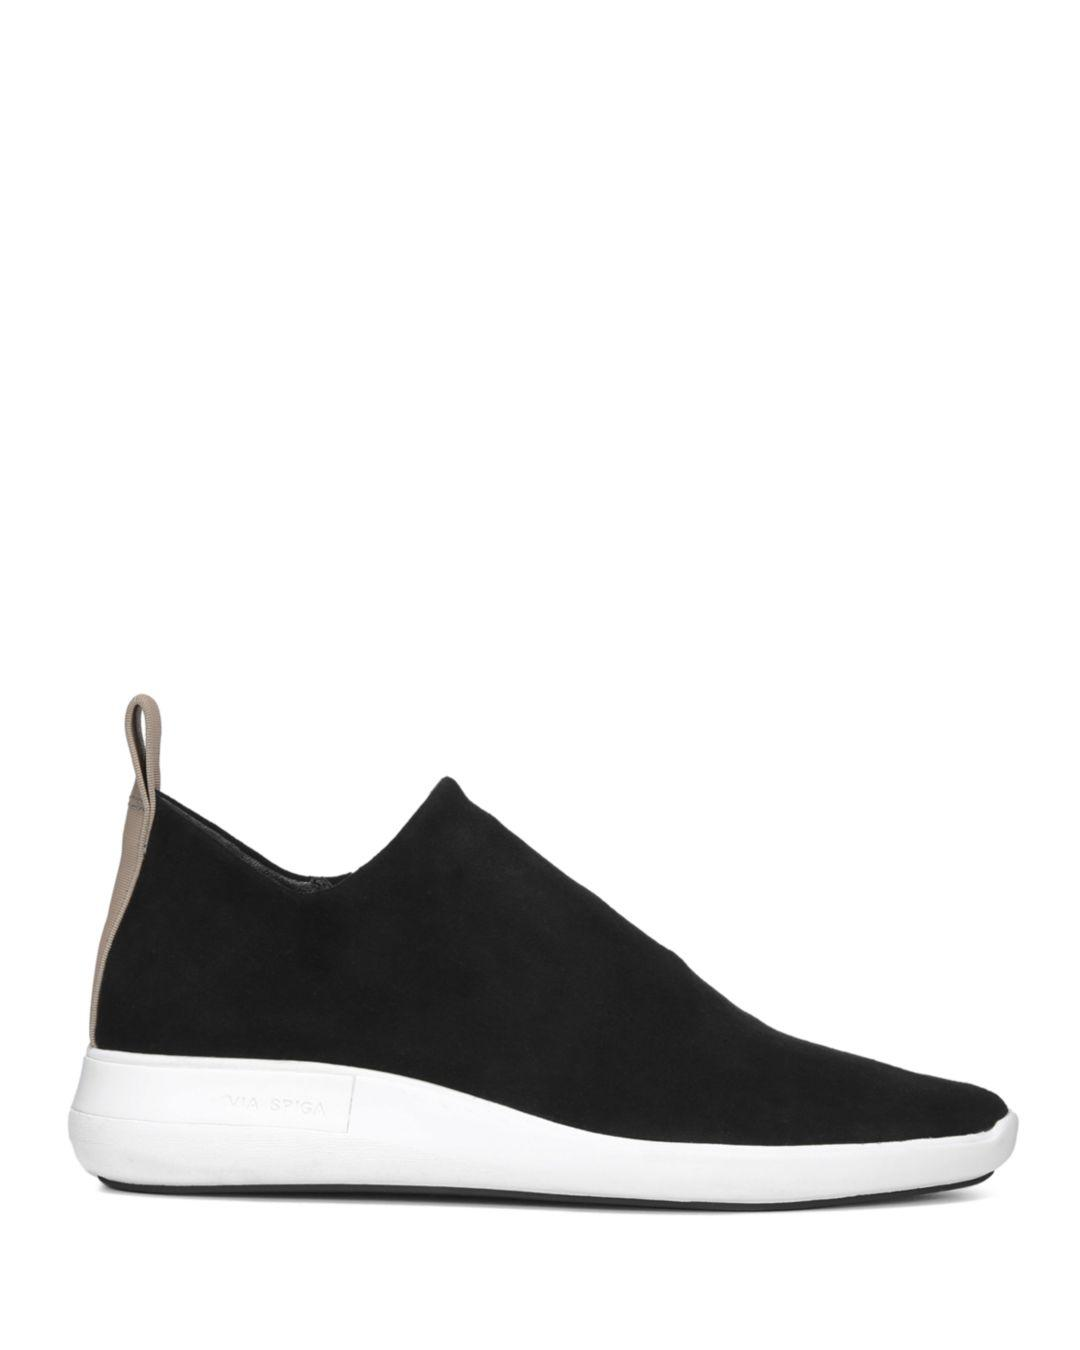 fdefc3097cc1 Lyst - Via Spiga Women s Marlow Suede Slip-on Sneakers in Black